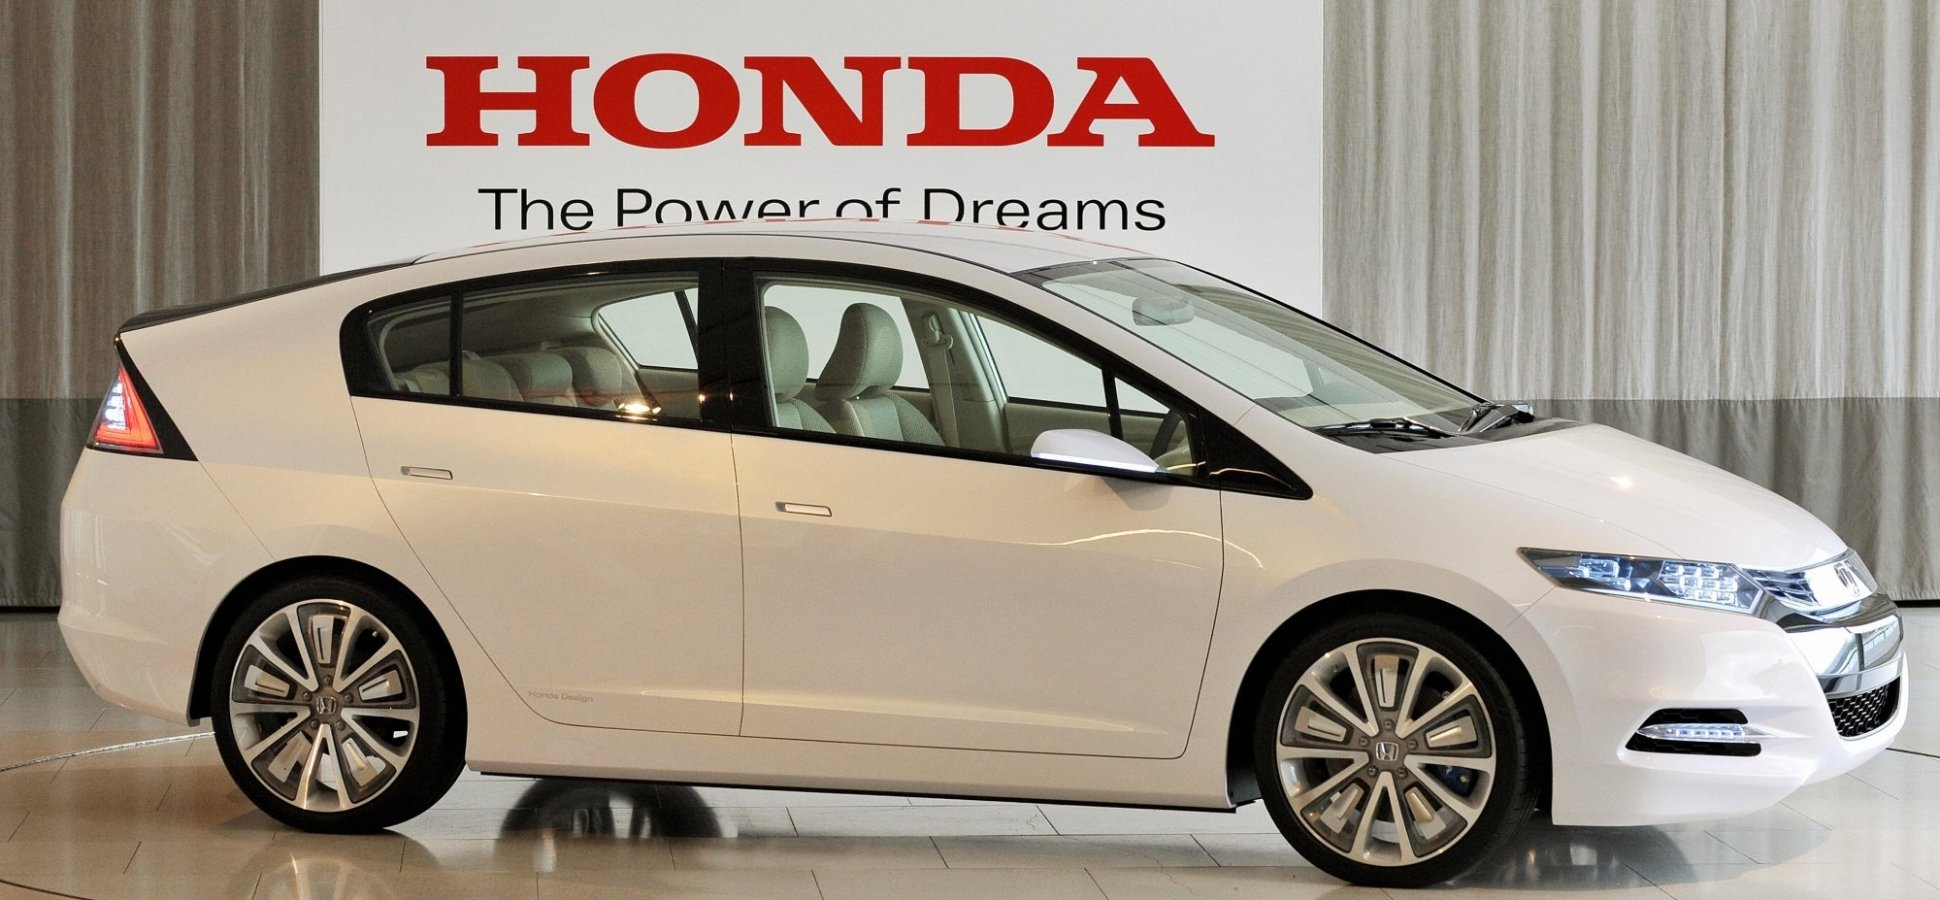 Honda And Acura Recall 1 6 Million Cars Because Safety Features Made Them Dangerous Inc